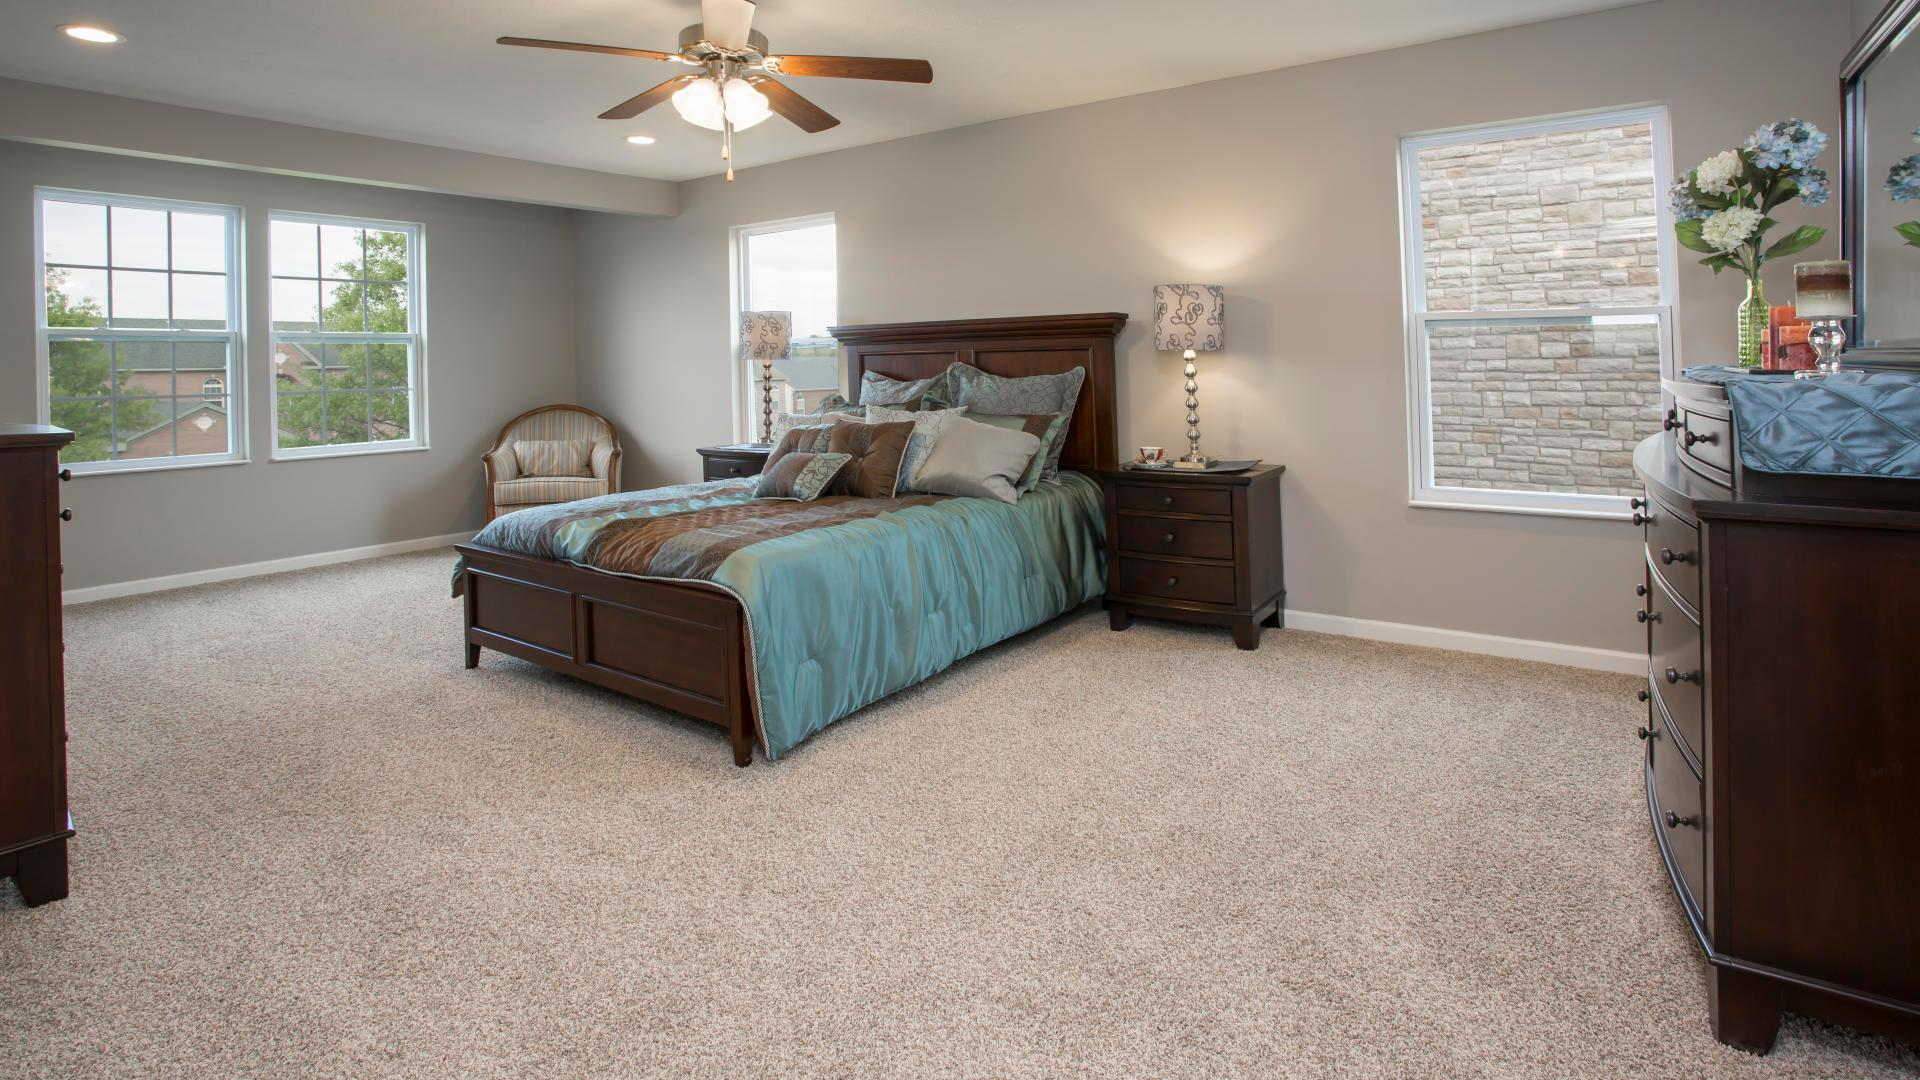 Bedroom featured in the Newbury By Maronda Homes in Pittsburgh, PA